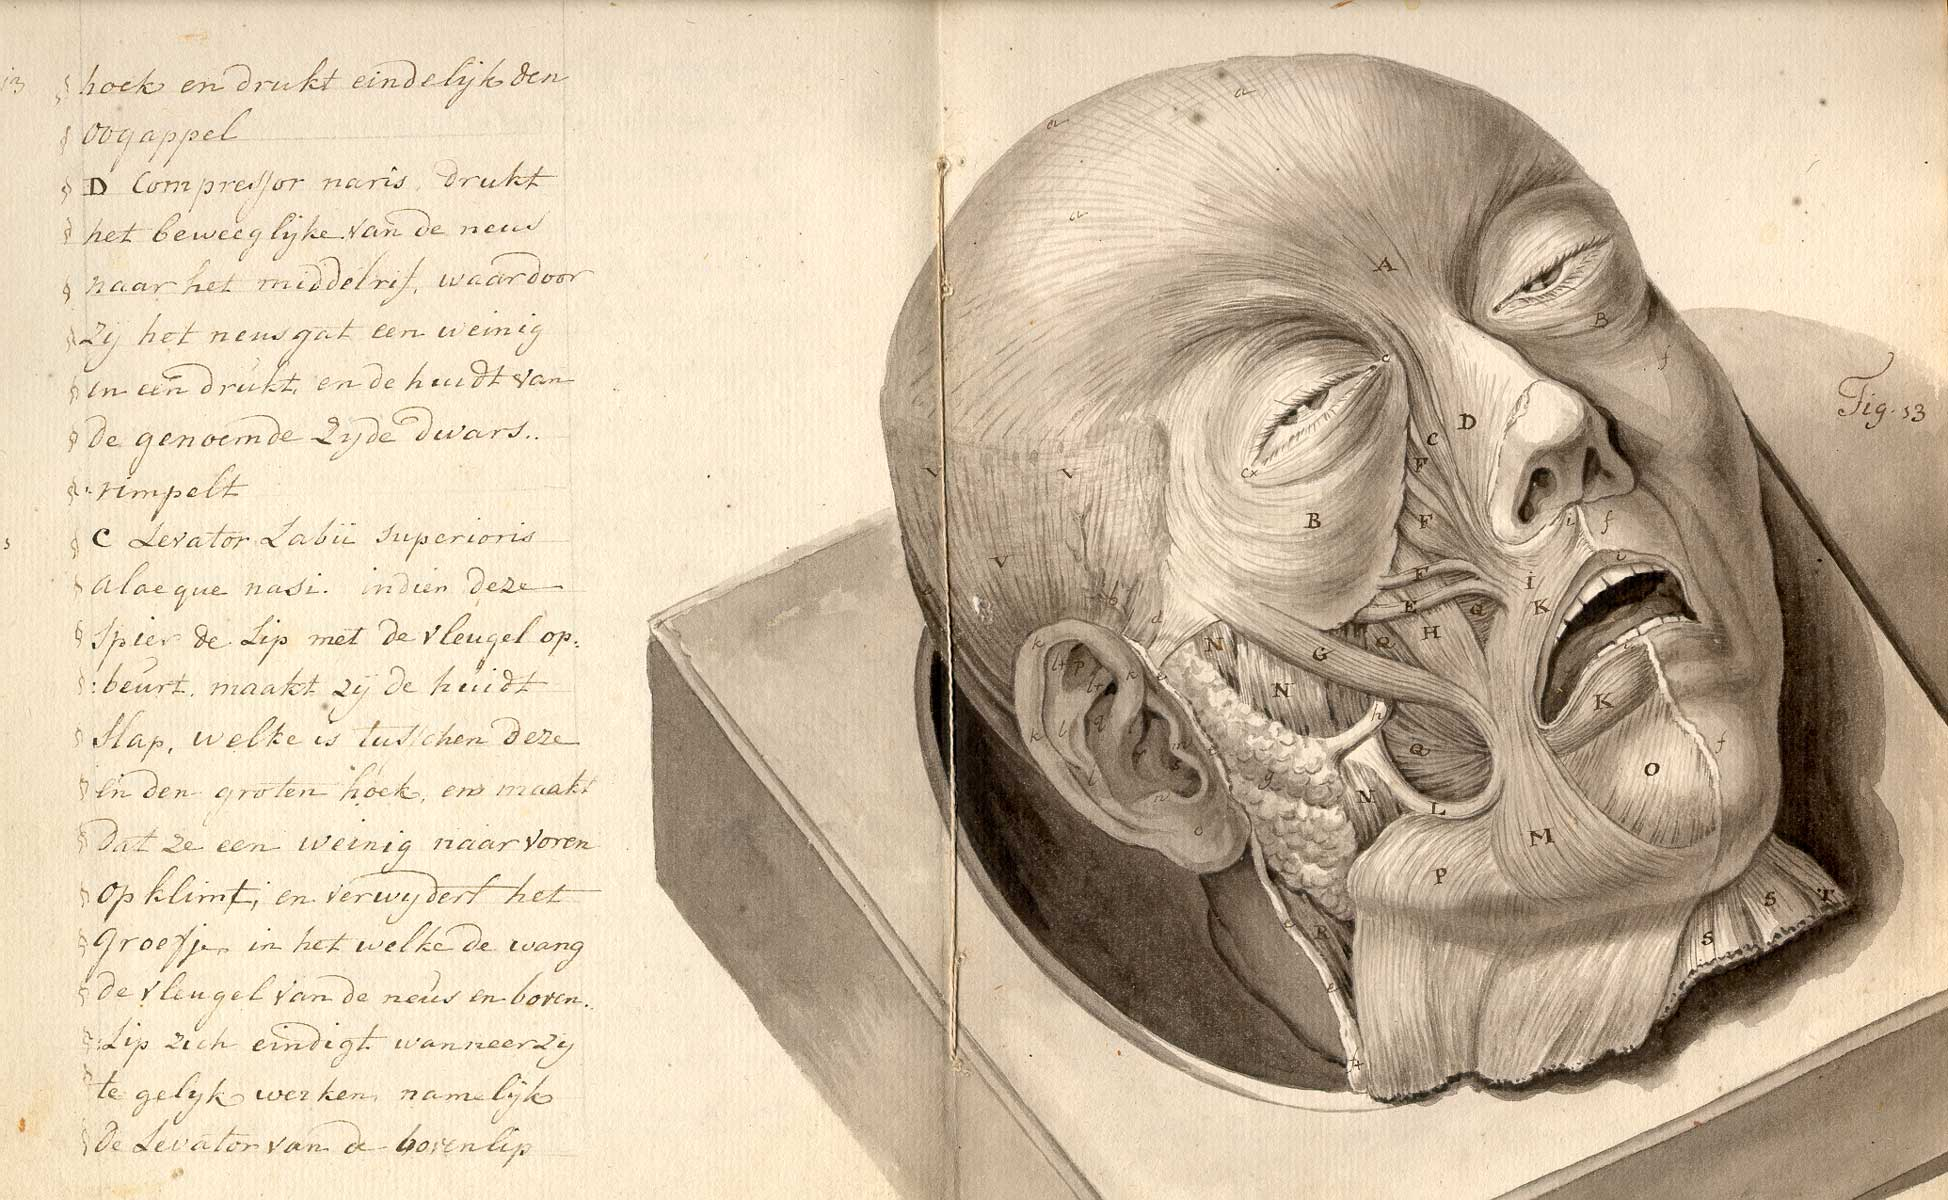 Treatise on physiognomy